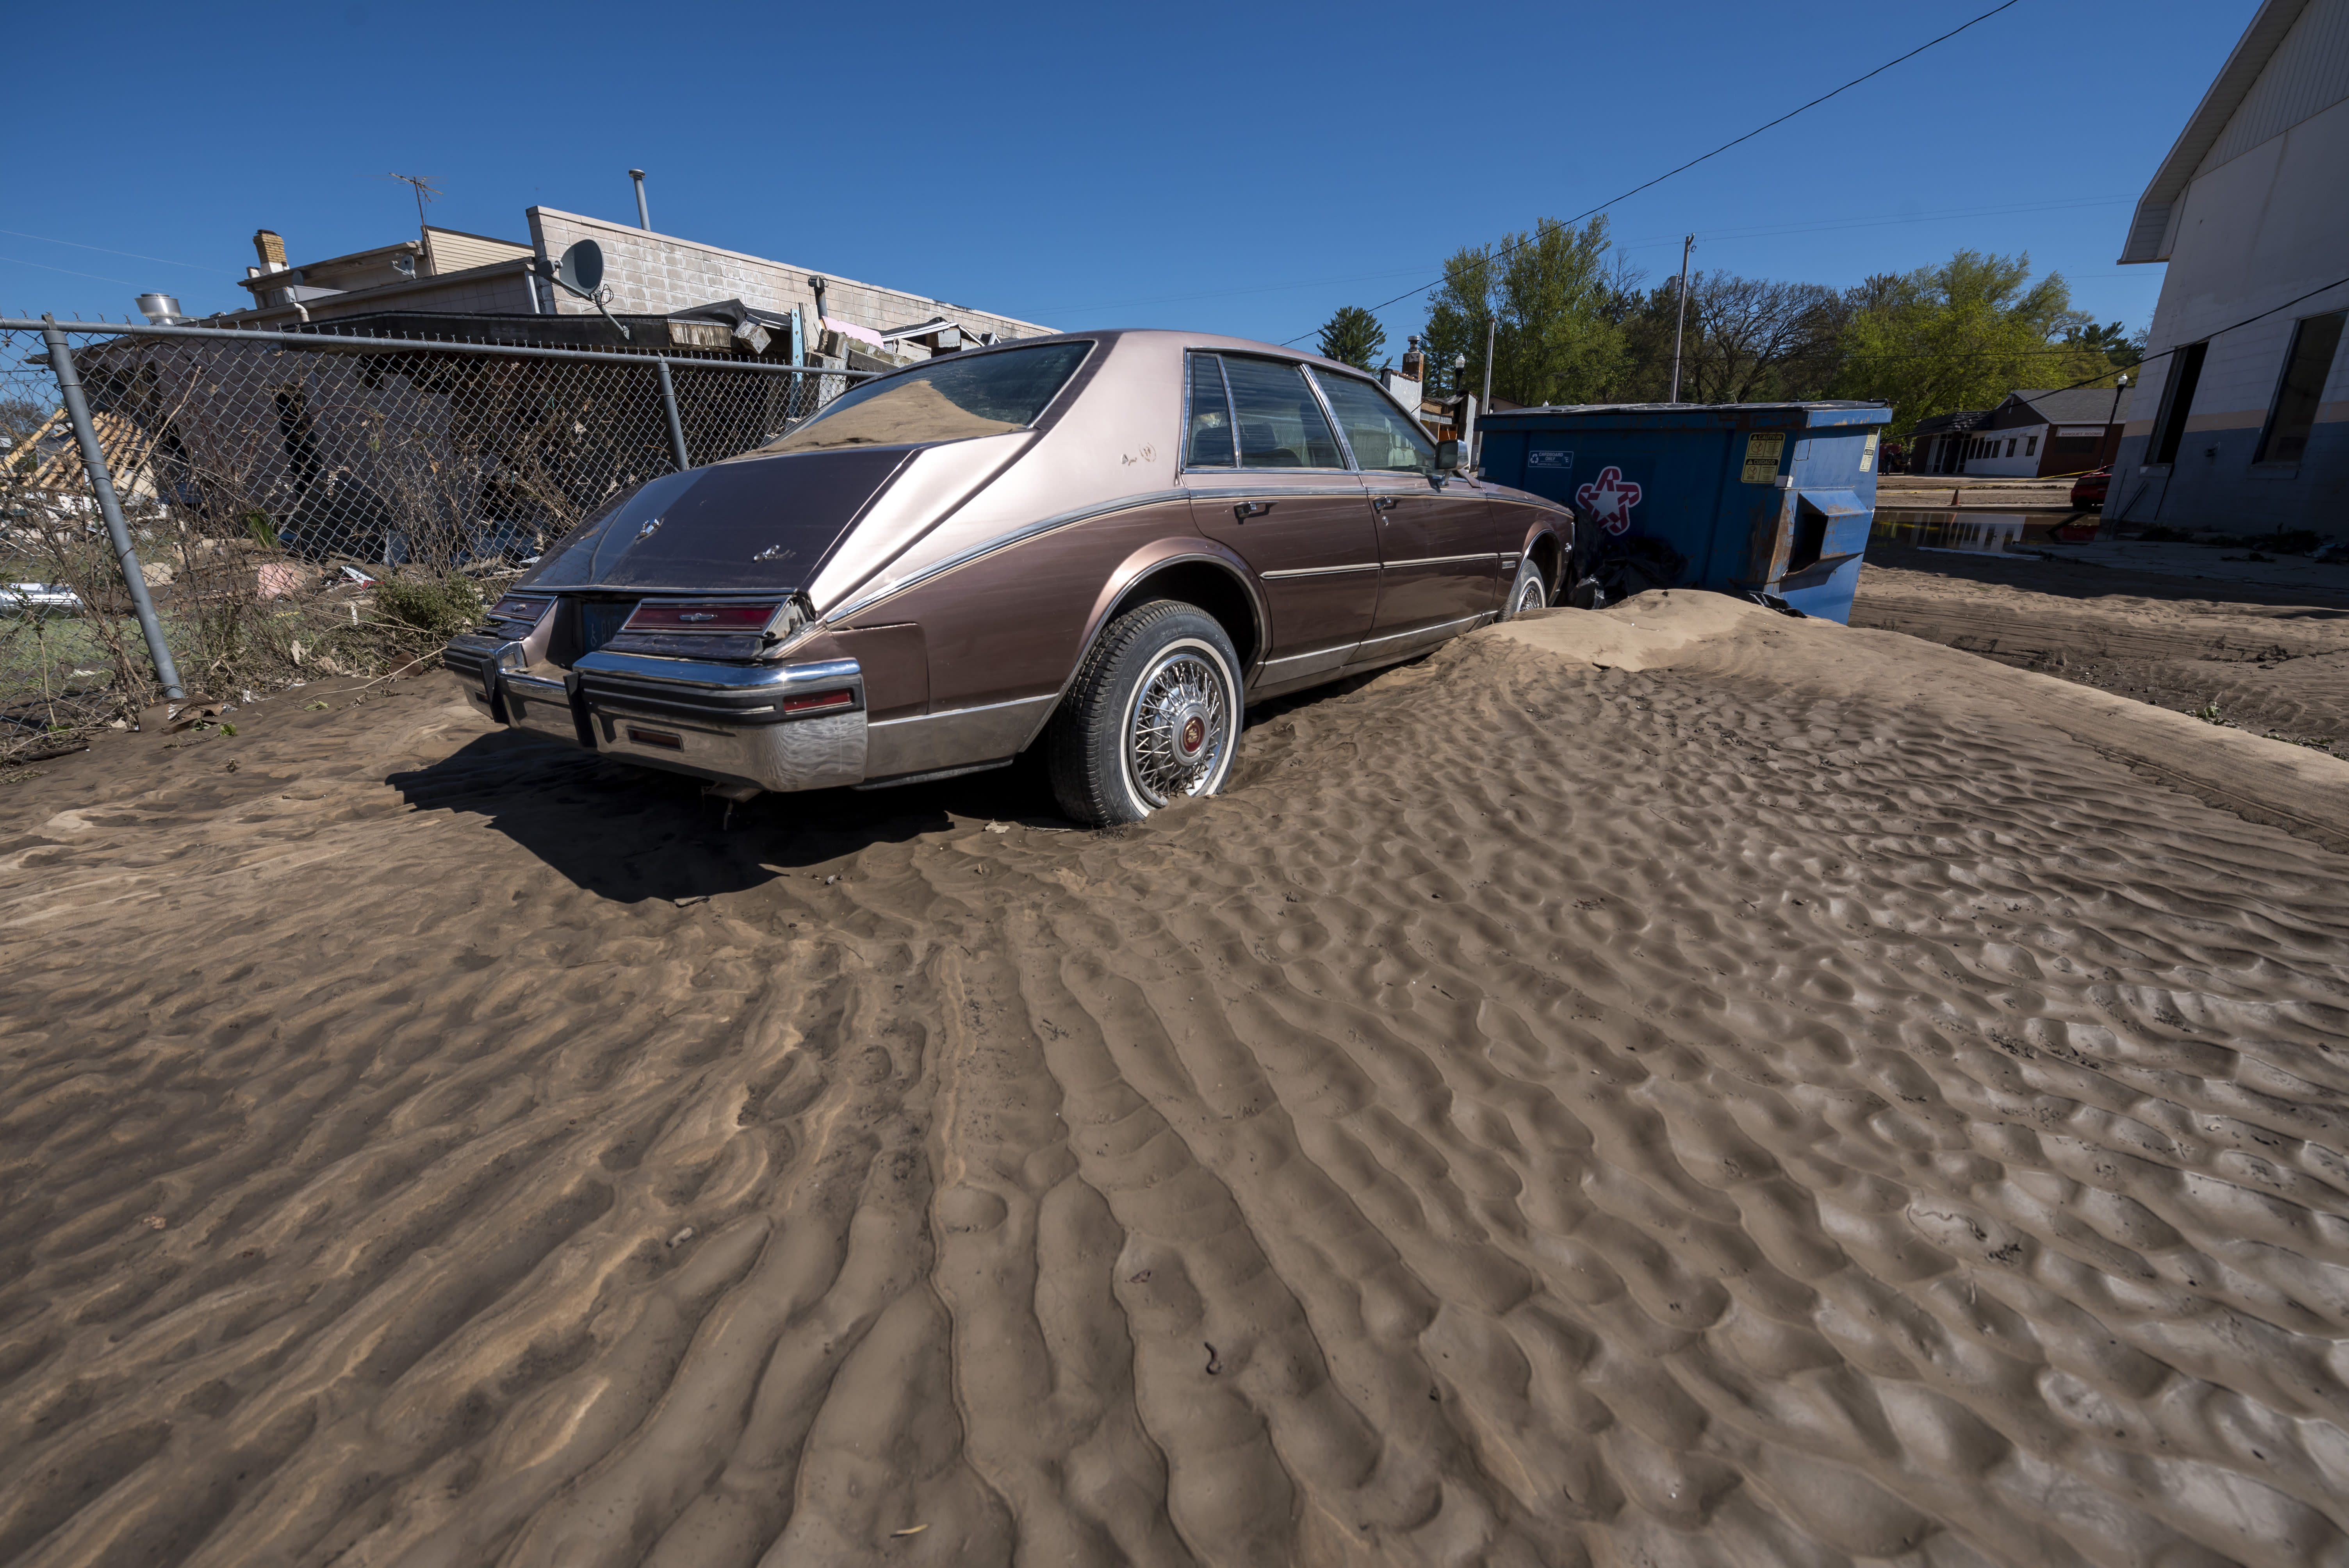 A Cadillac sits in a pile of sand as residents and business owners dig out after flooding swept through the town of Sanford, Thursday, May 21, 2020. Senior citizens are among the scores of displaced people staying in shelters after flooding overwhelmed two dams, submerged homes and washed out roads in Central Michigan. (David Guralnick/Detroit News via AP)